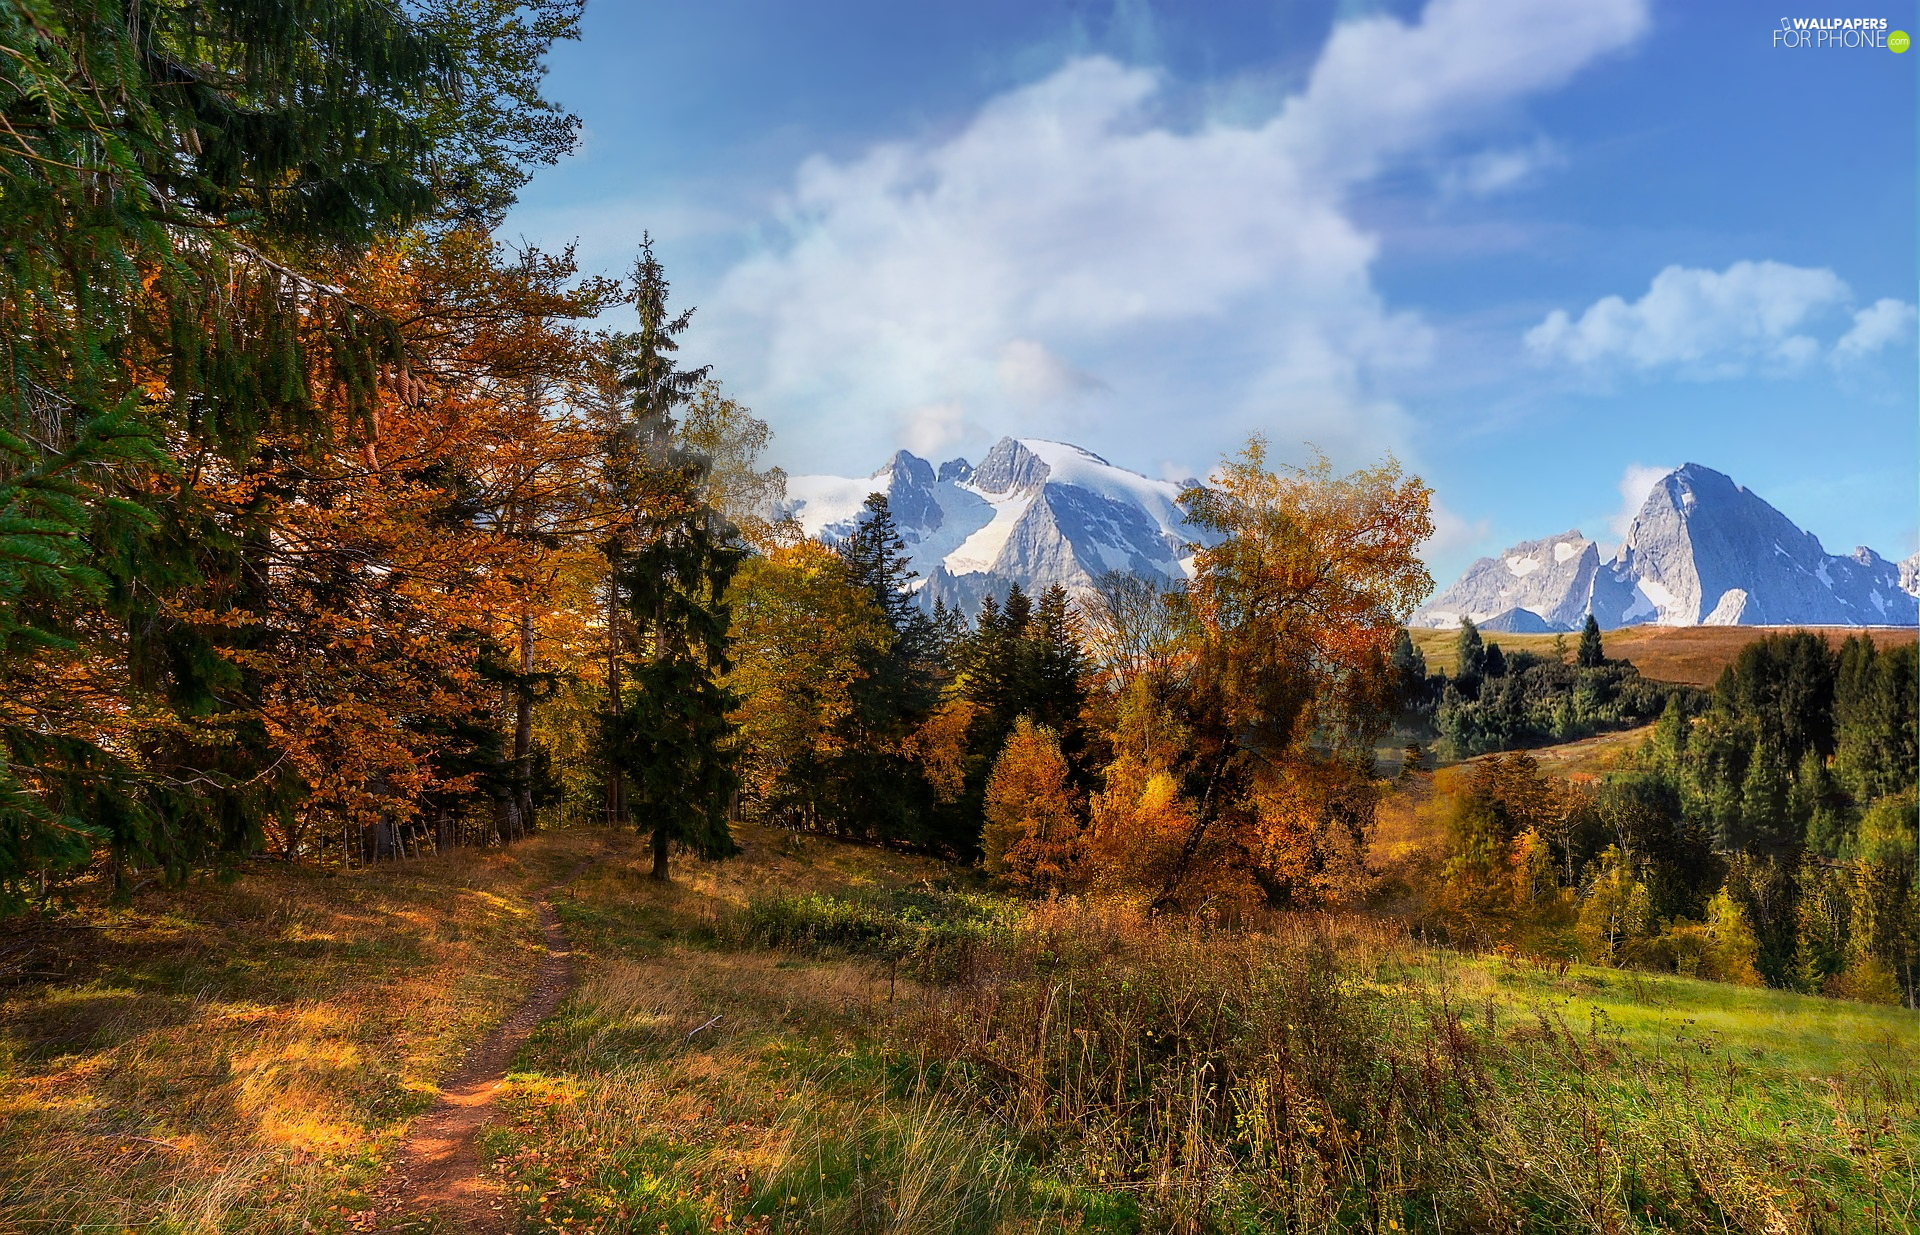 trees, Snowy, forest, peaks, Mountains, viewes, autumn